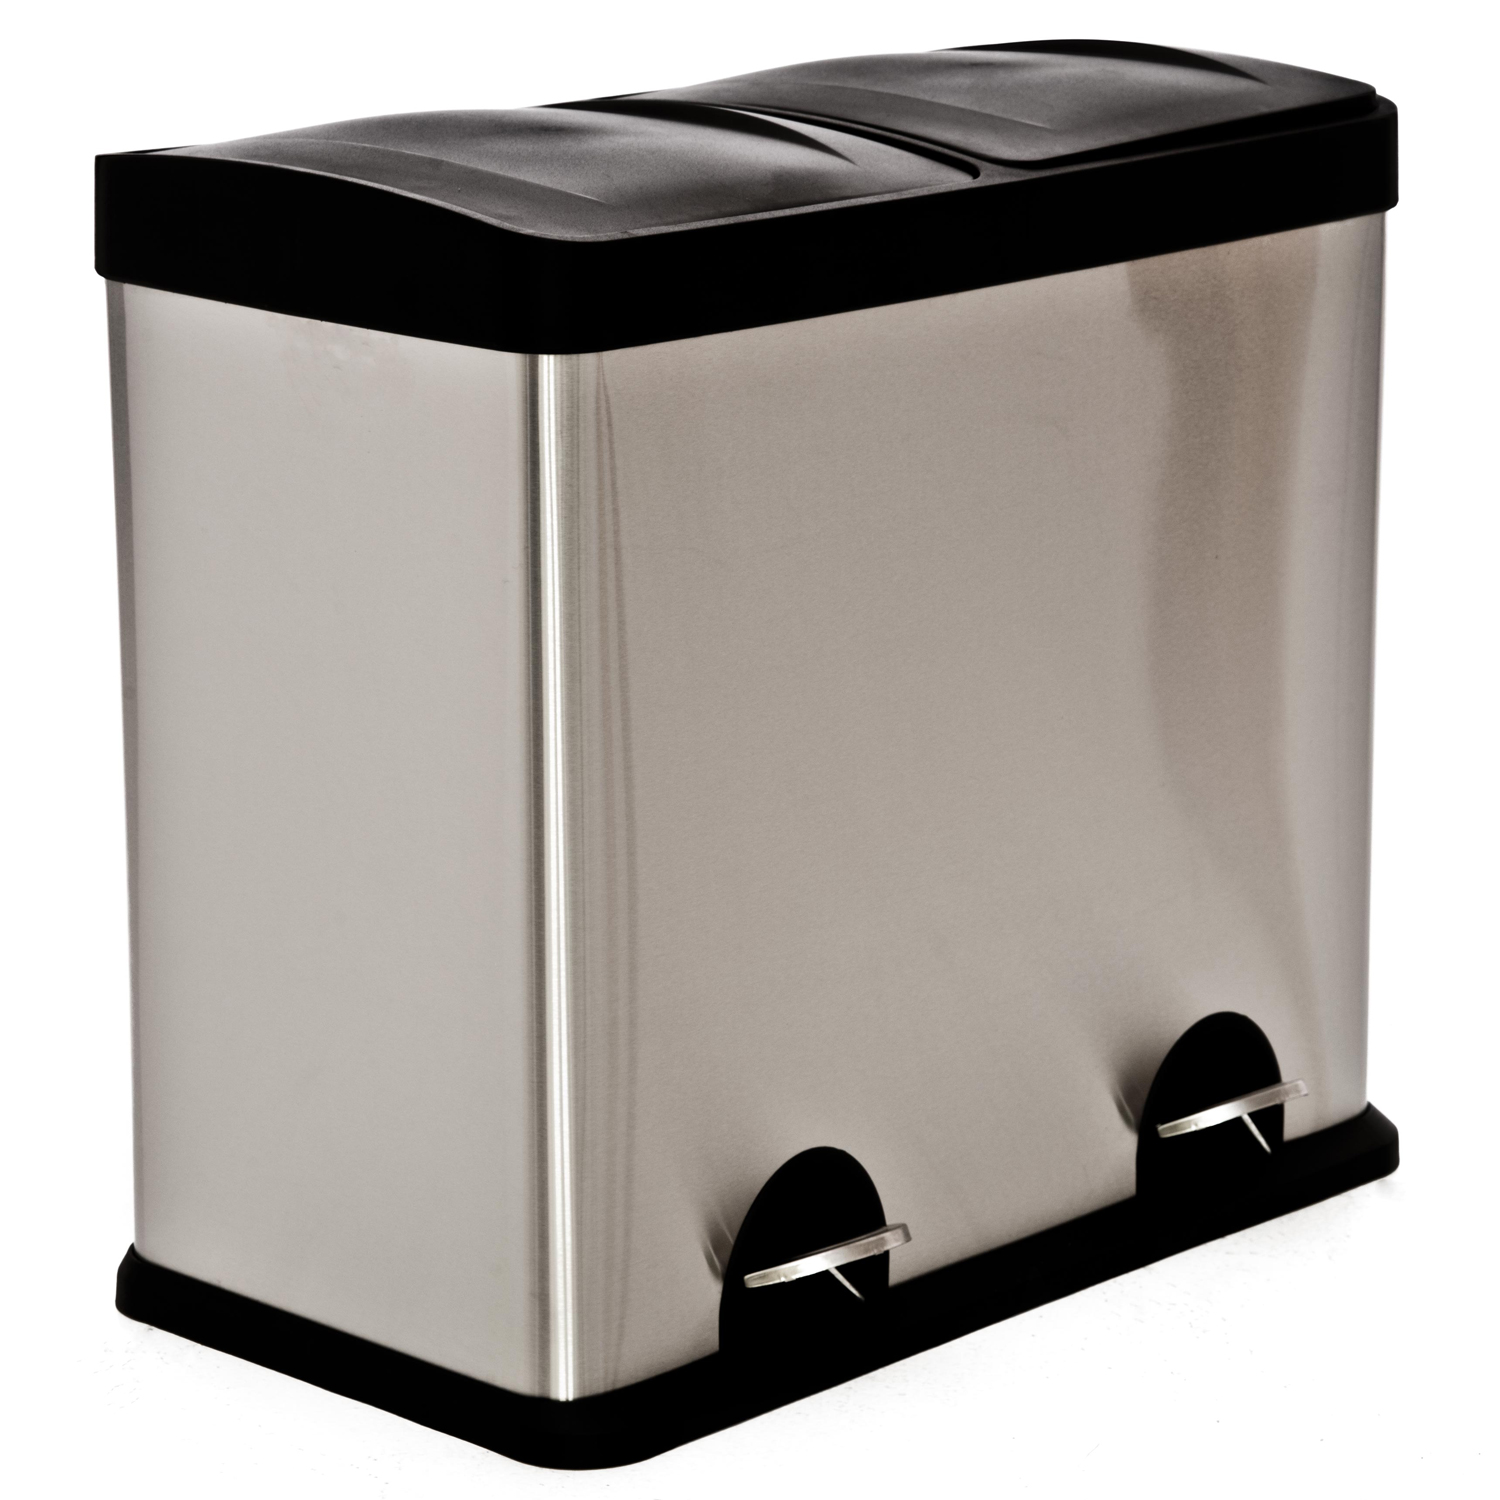 40l Recycle Bin, Stainless Steel